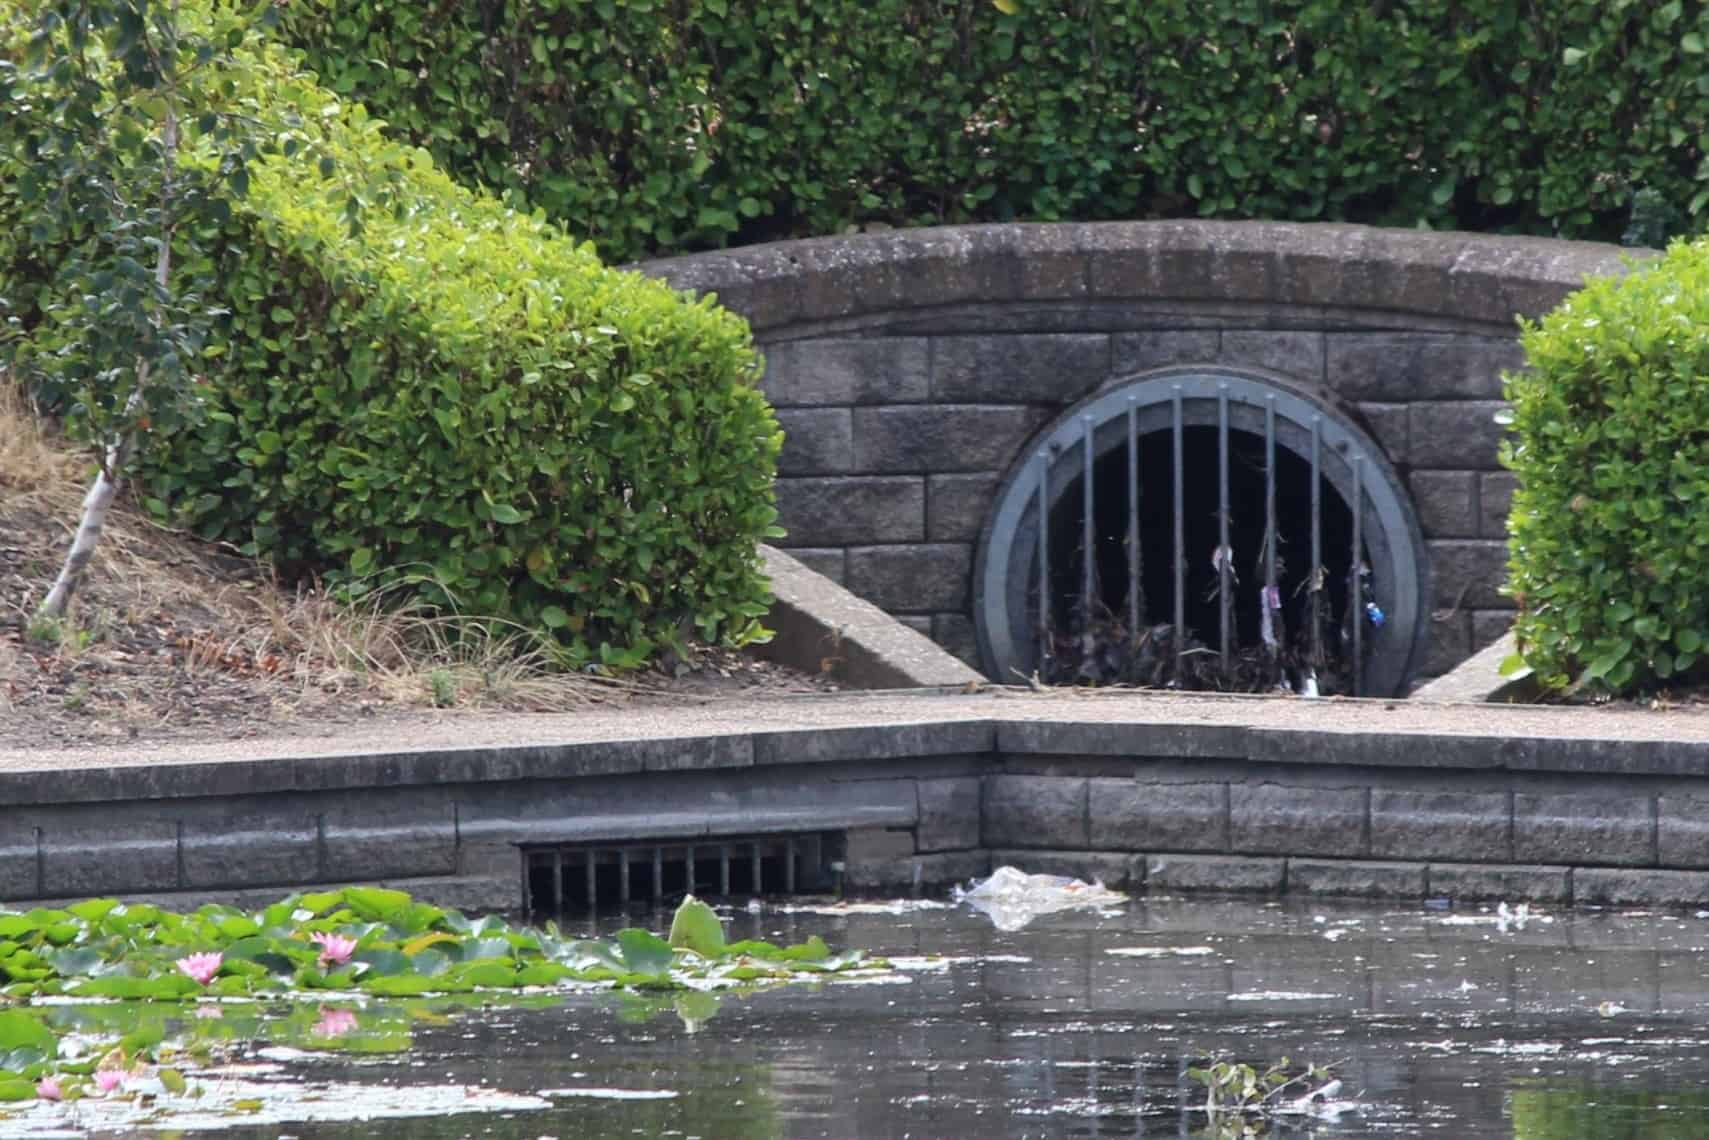 Environment Agency Culvert Policy